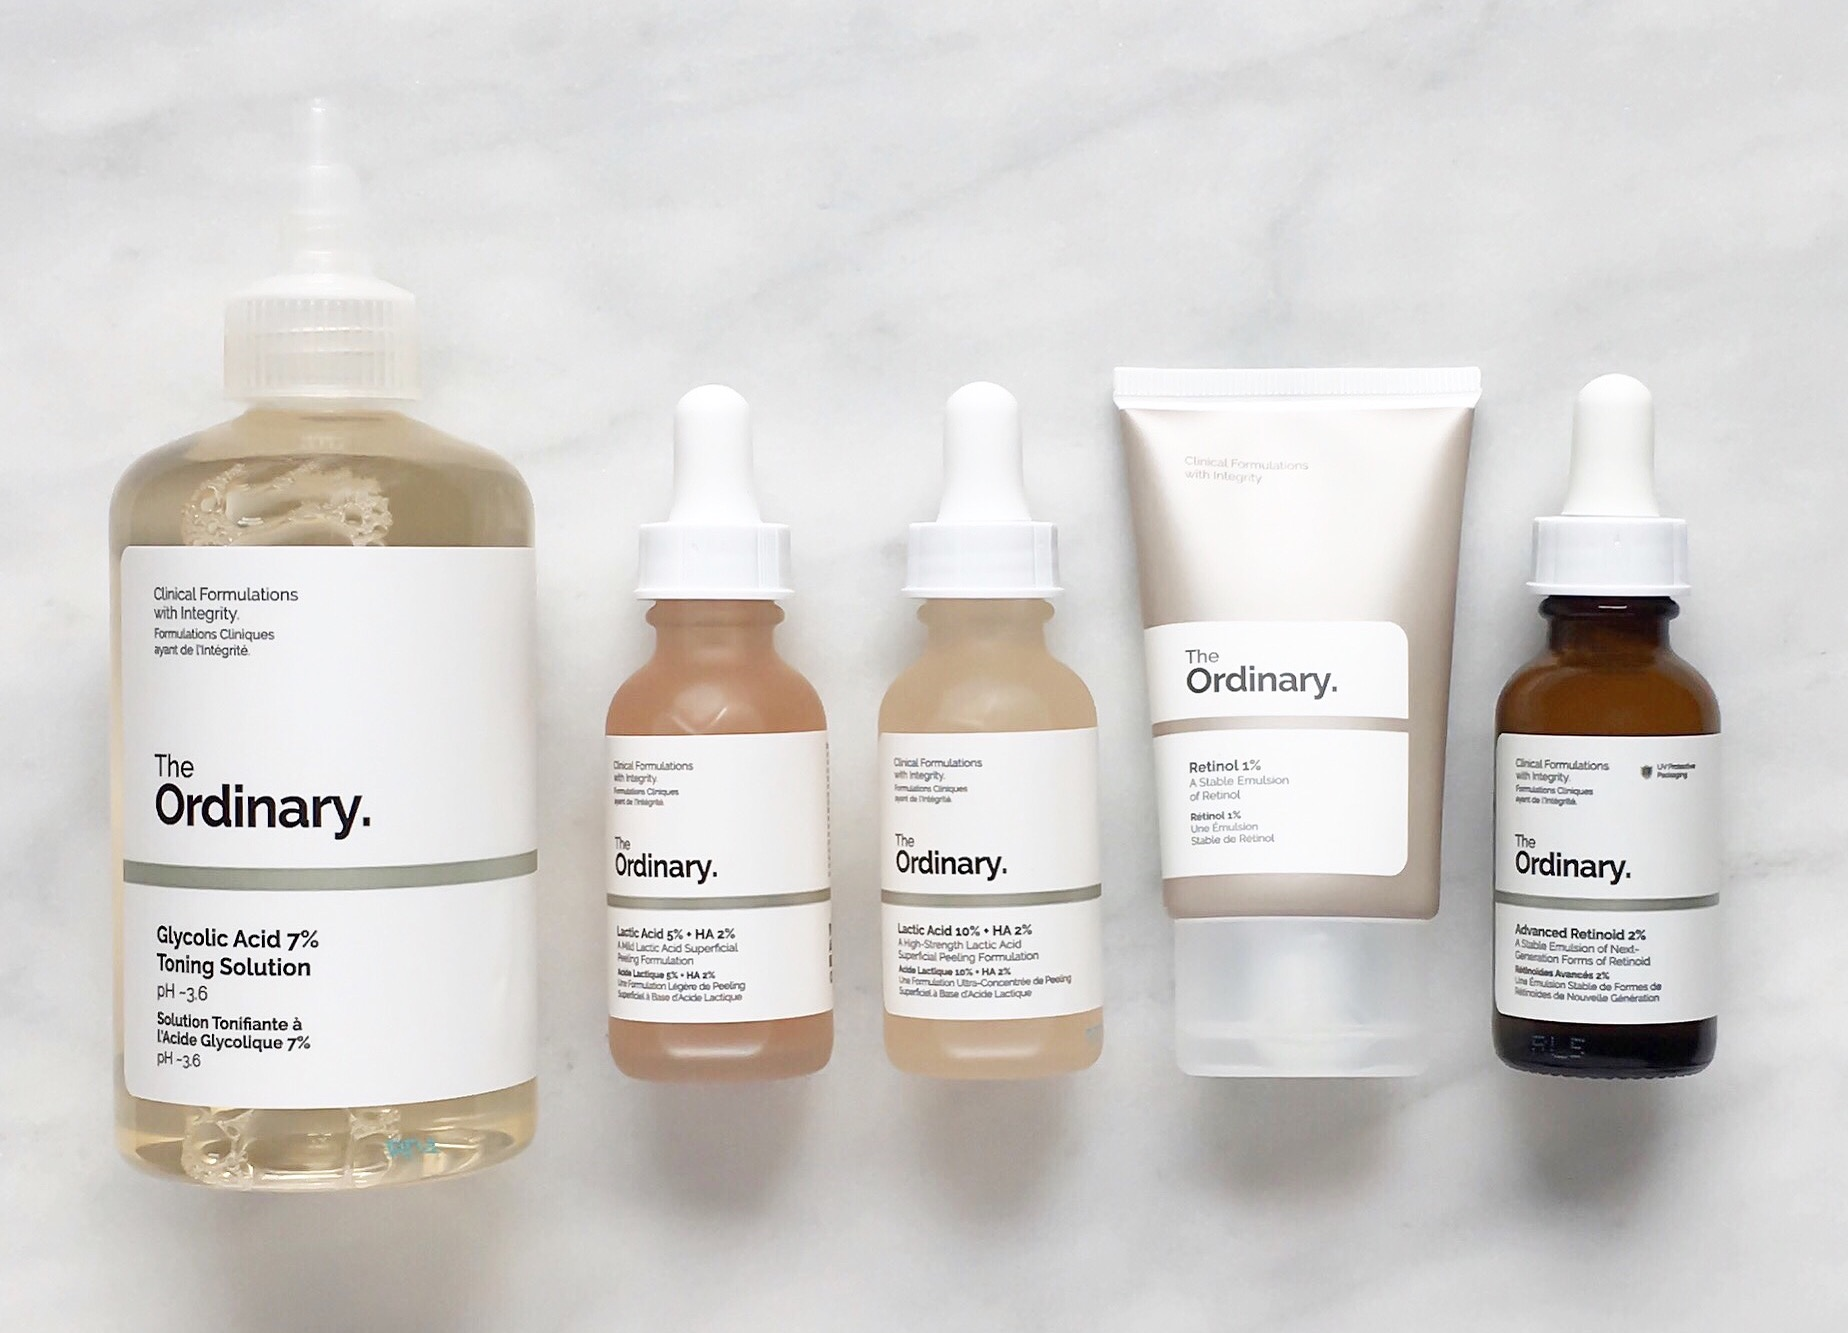 The ordinary regimen guide